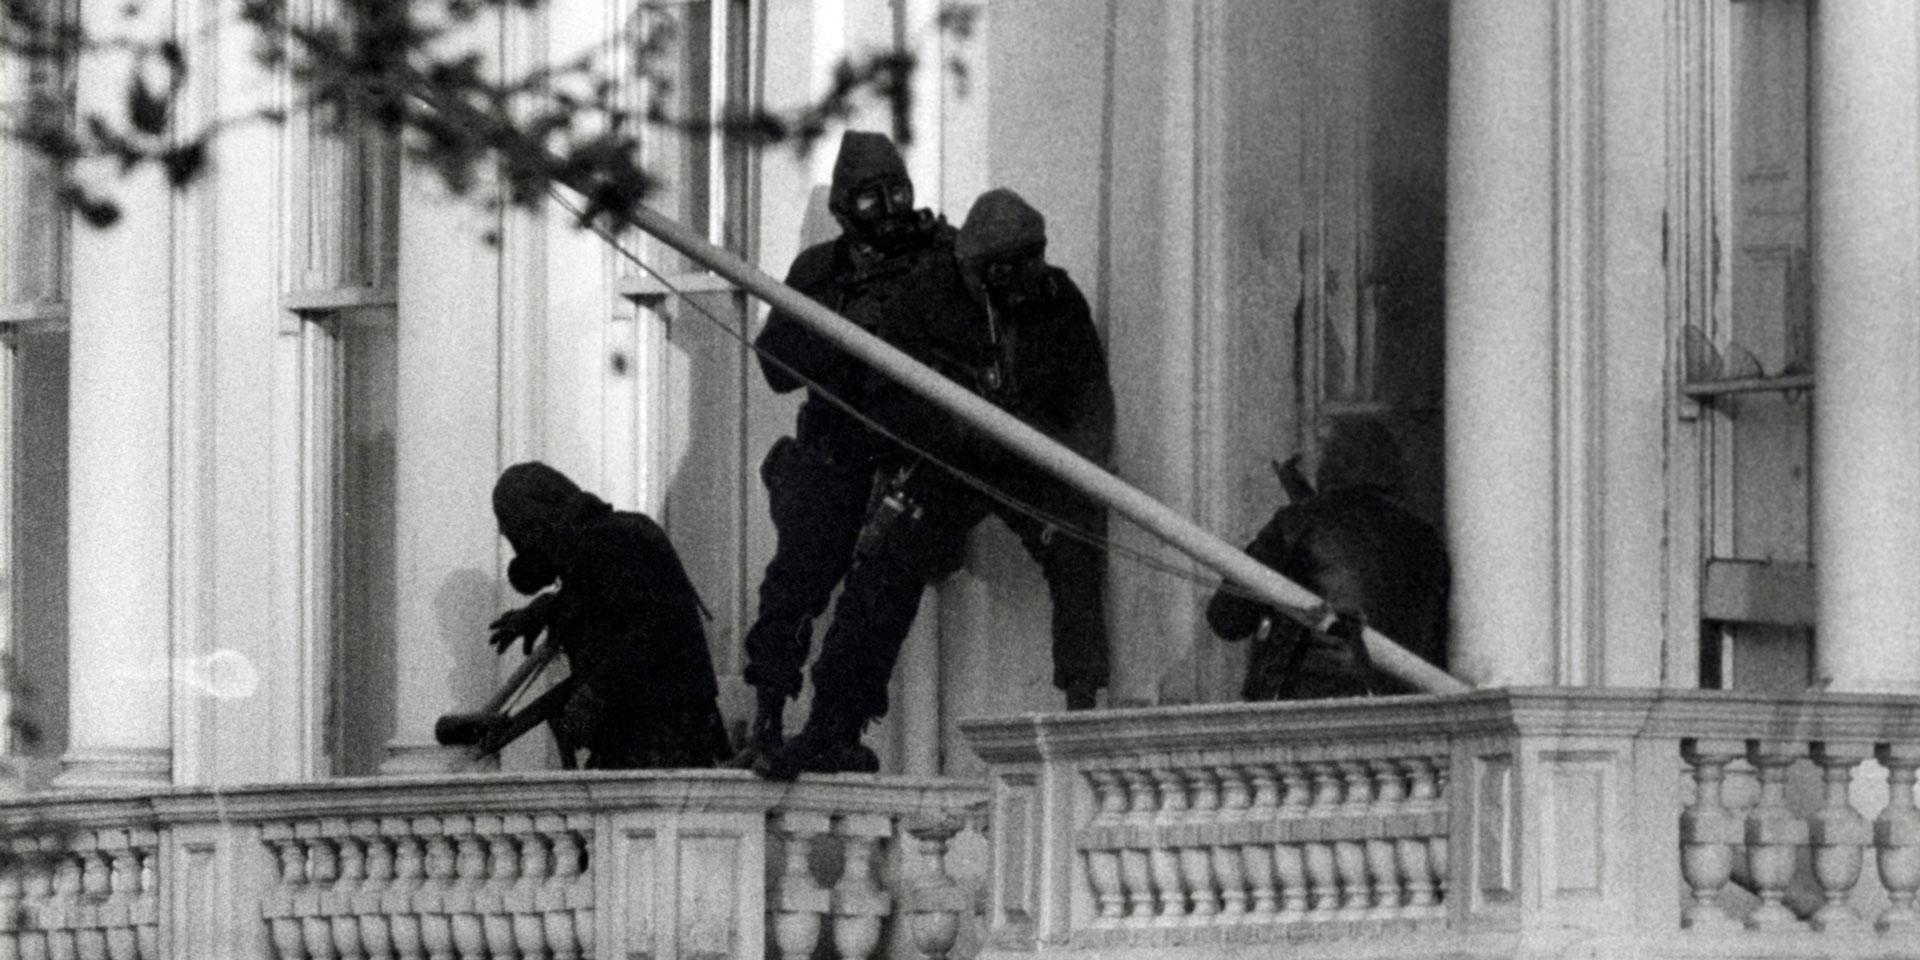 SAS troops entering the windows of the Iranian Embassy during the Siege, 1980